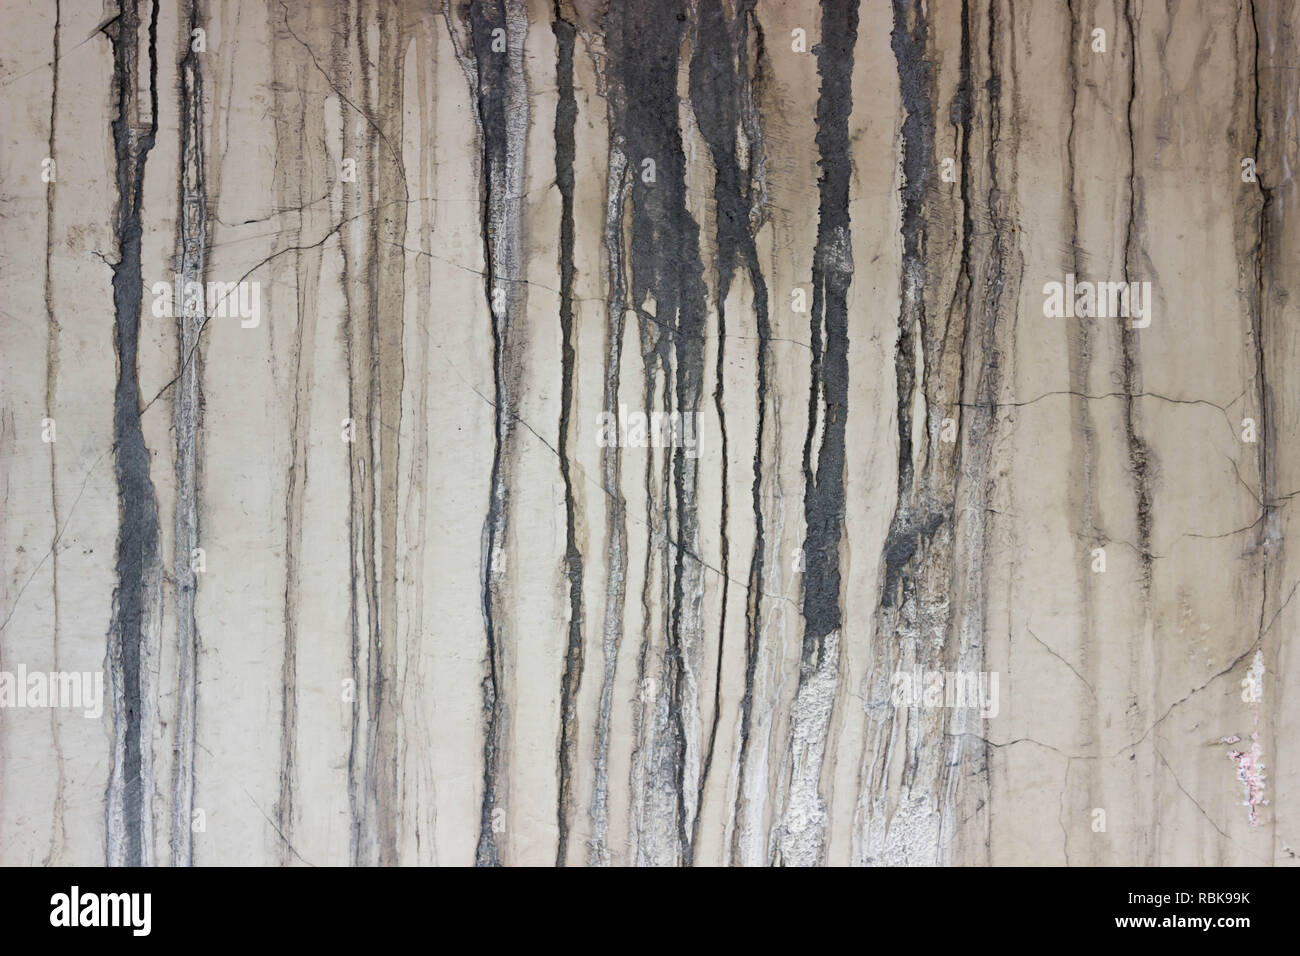 Grunge concrete wall with crack and stains in industrial building. Cement texture for design and background, with drips - Stock Image